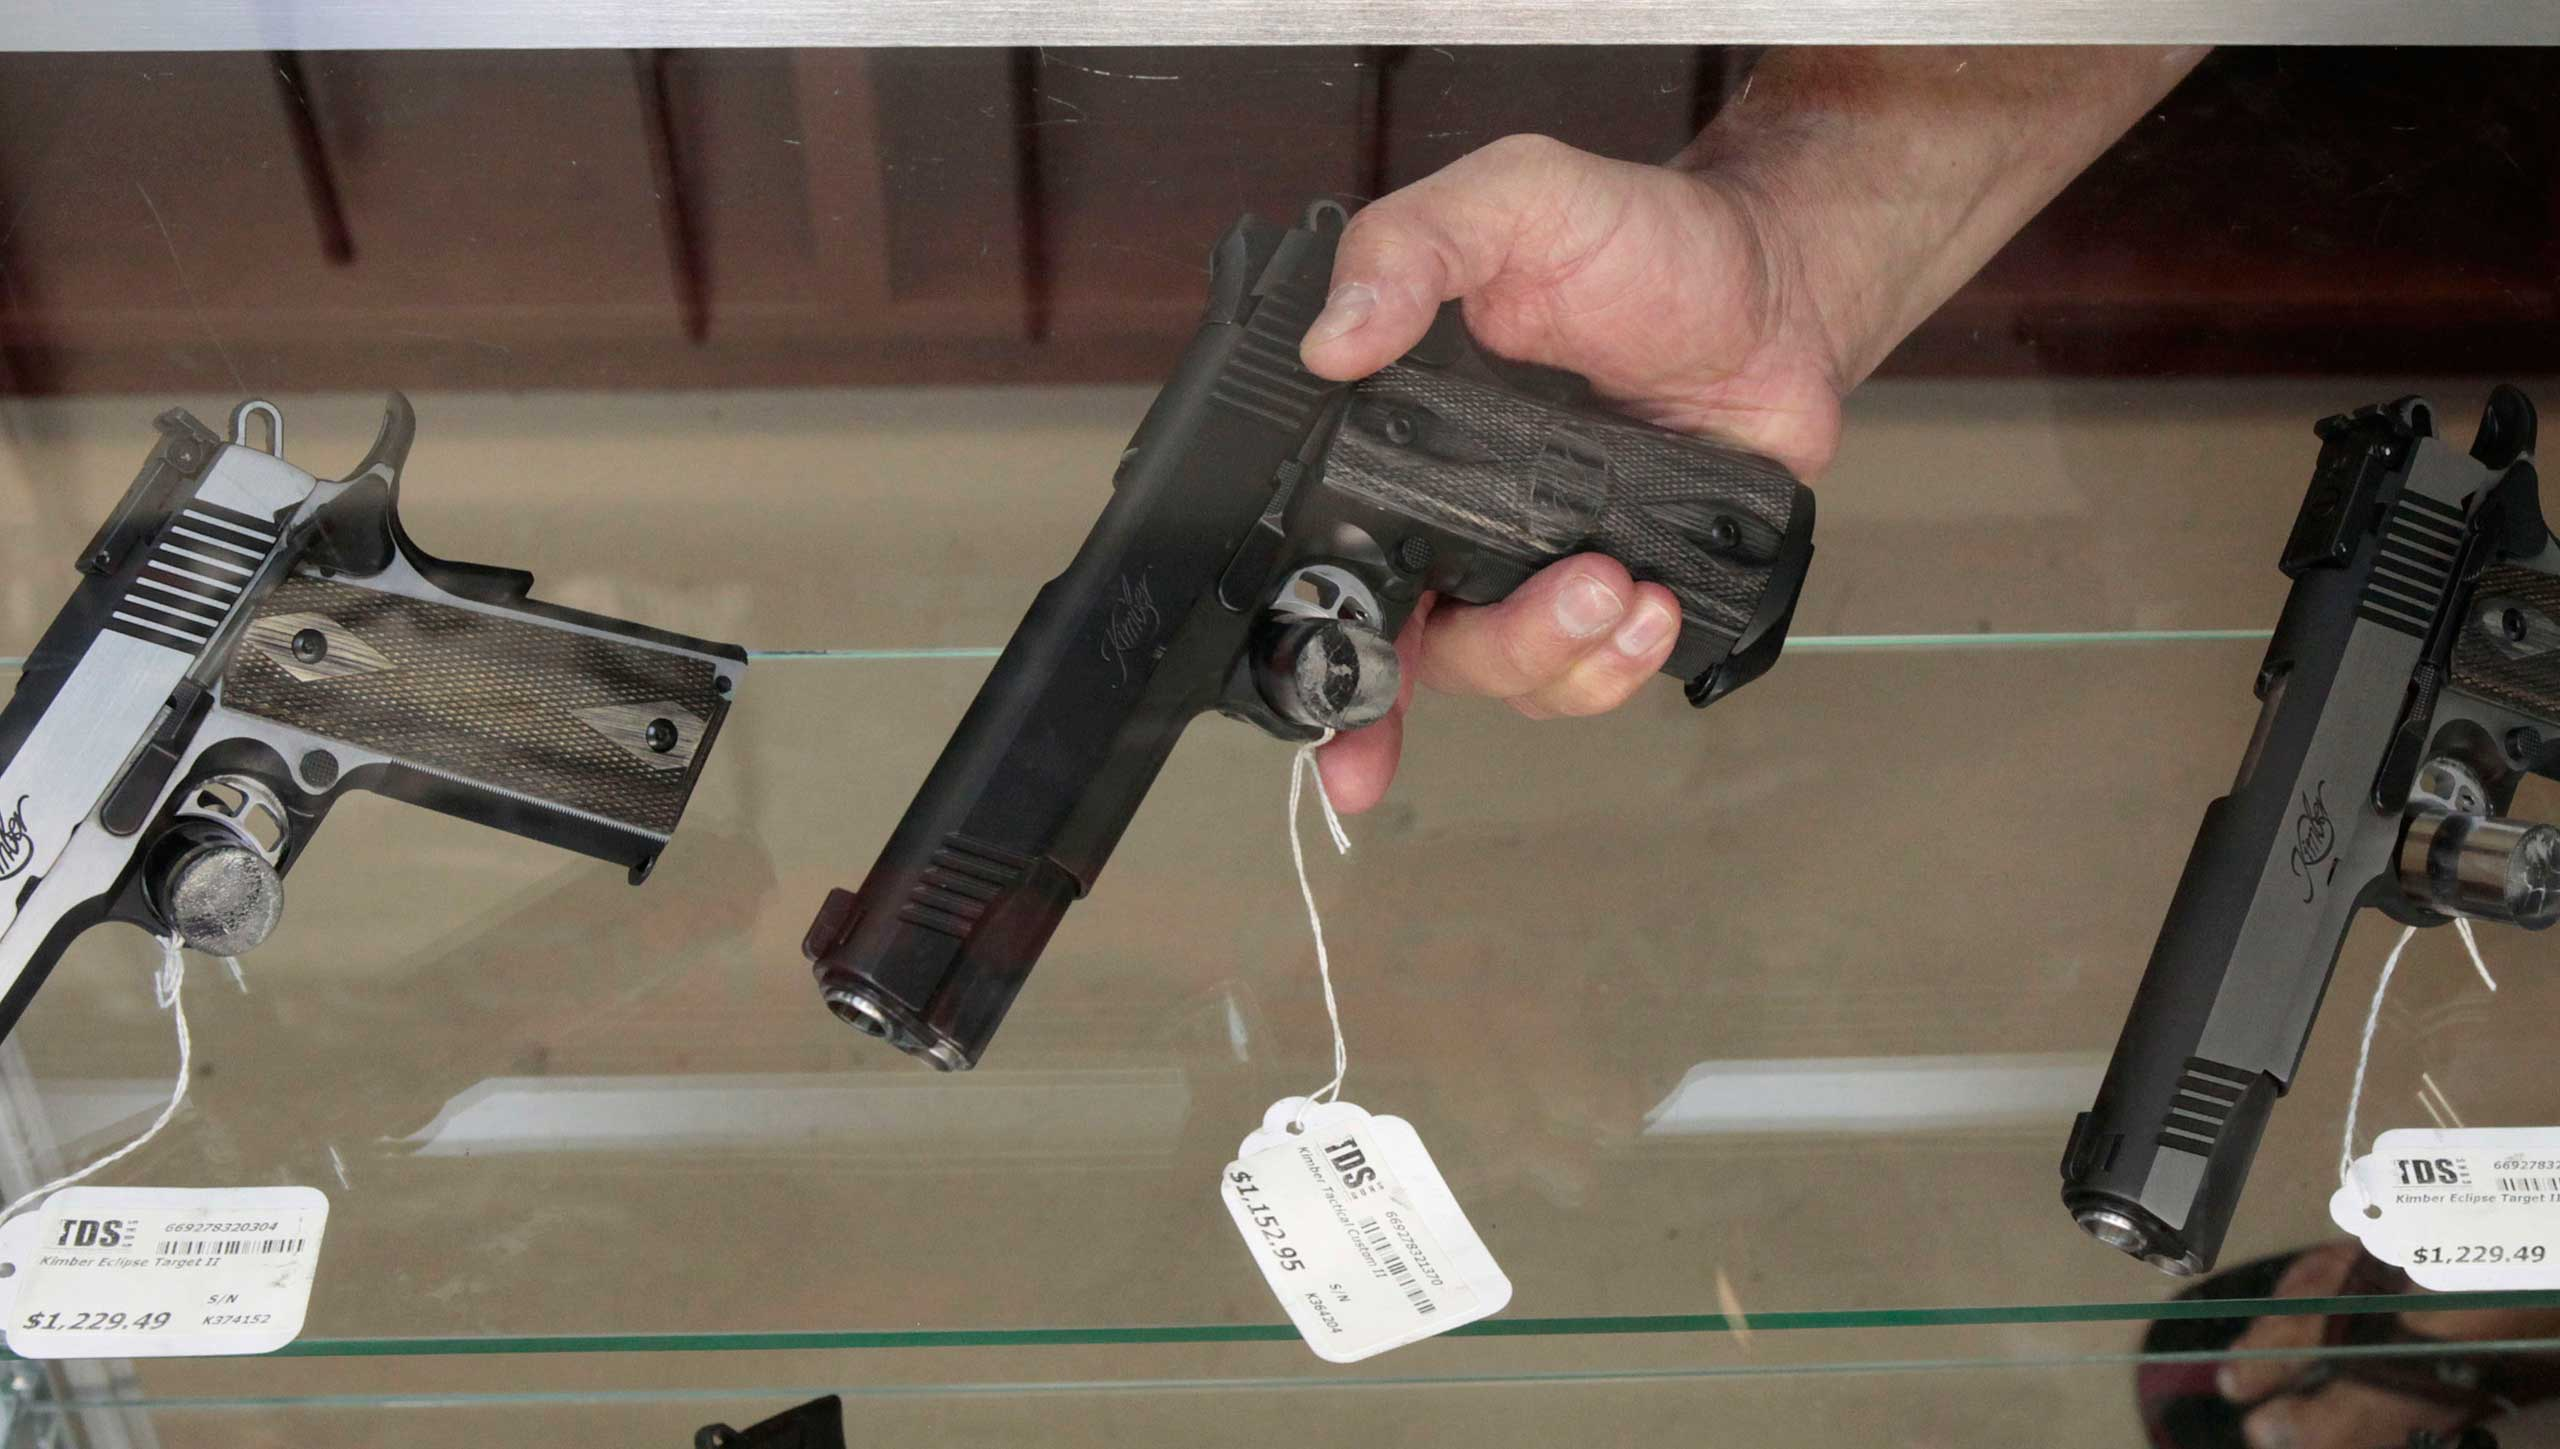 Semi-automatic pistol on display at store in Rocklin, Calif.